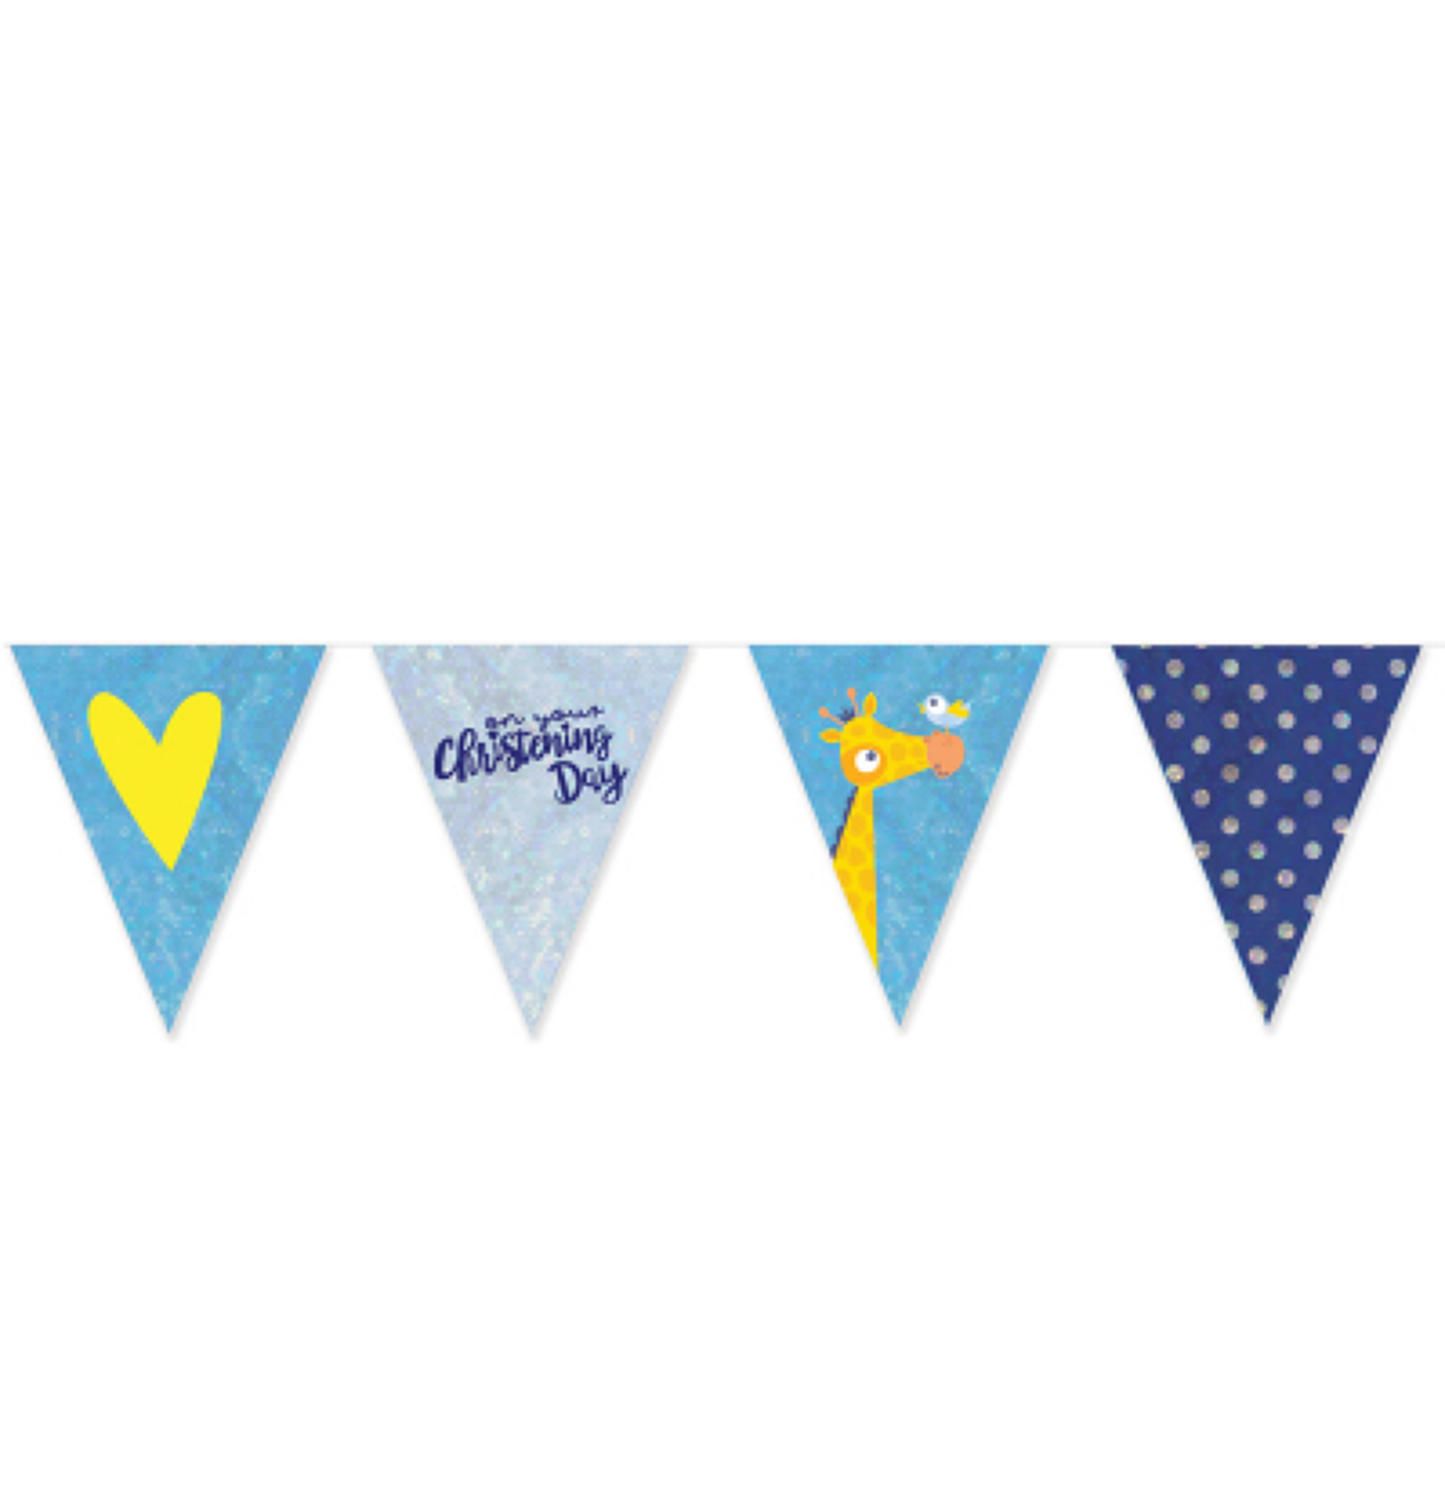 Christening Day Blue Foil Pennant Bunting